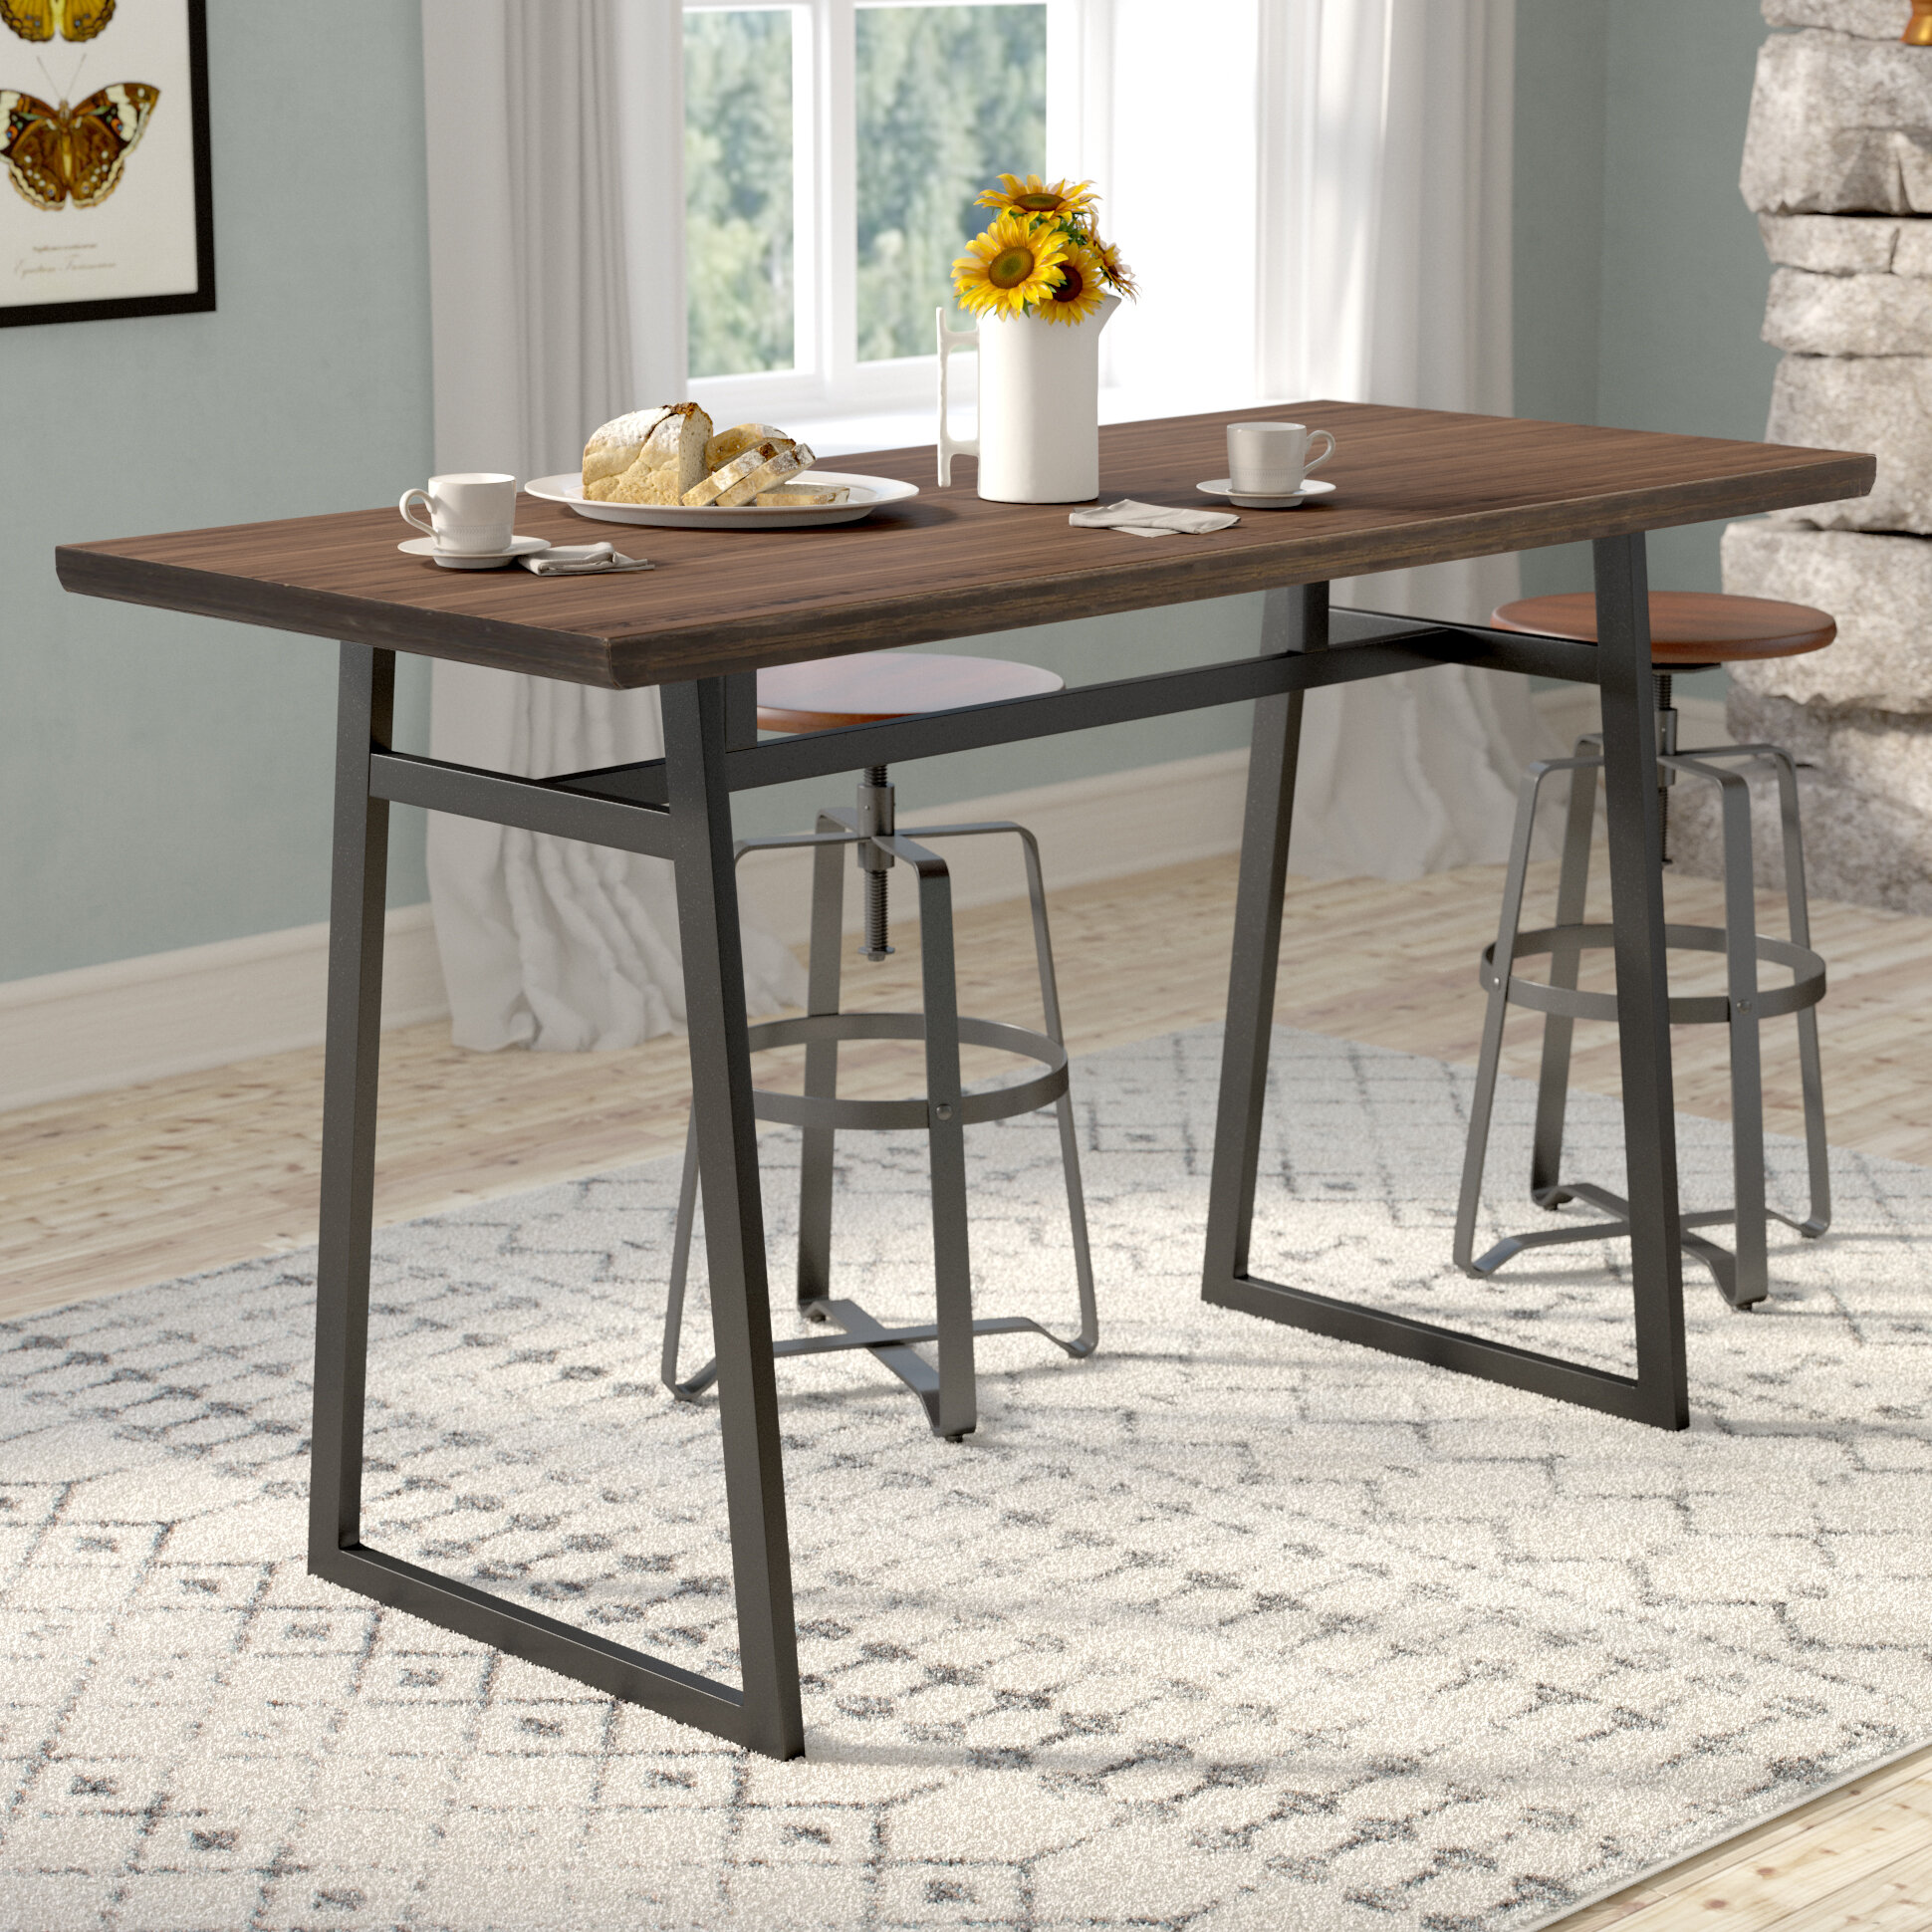 Narrow Trestle Kitchen Dining Tables You Ll Love In 2021 Wayfair